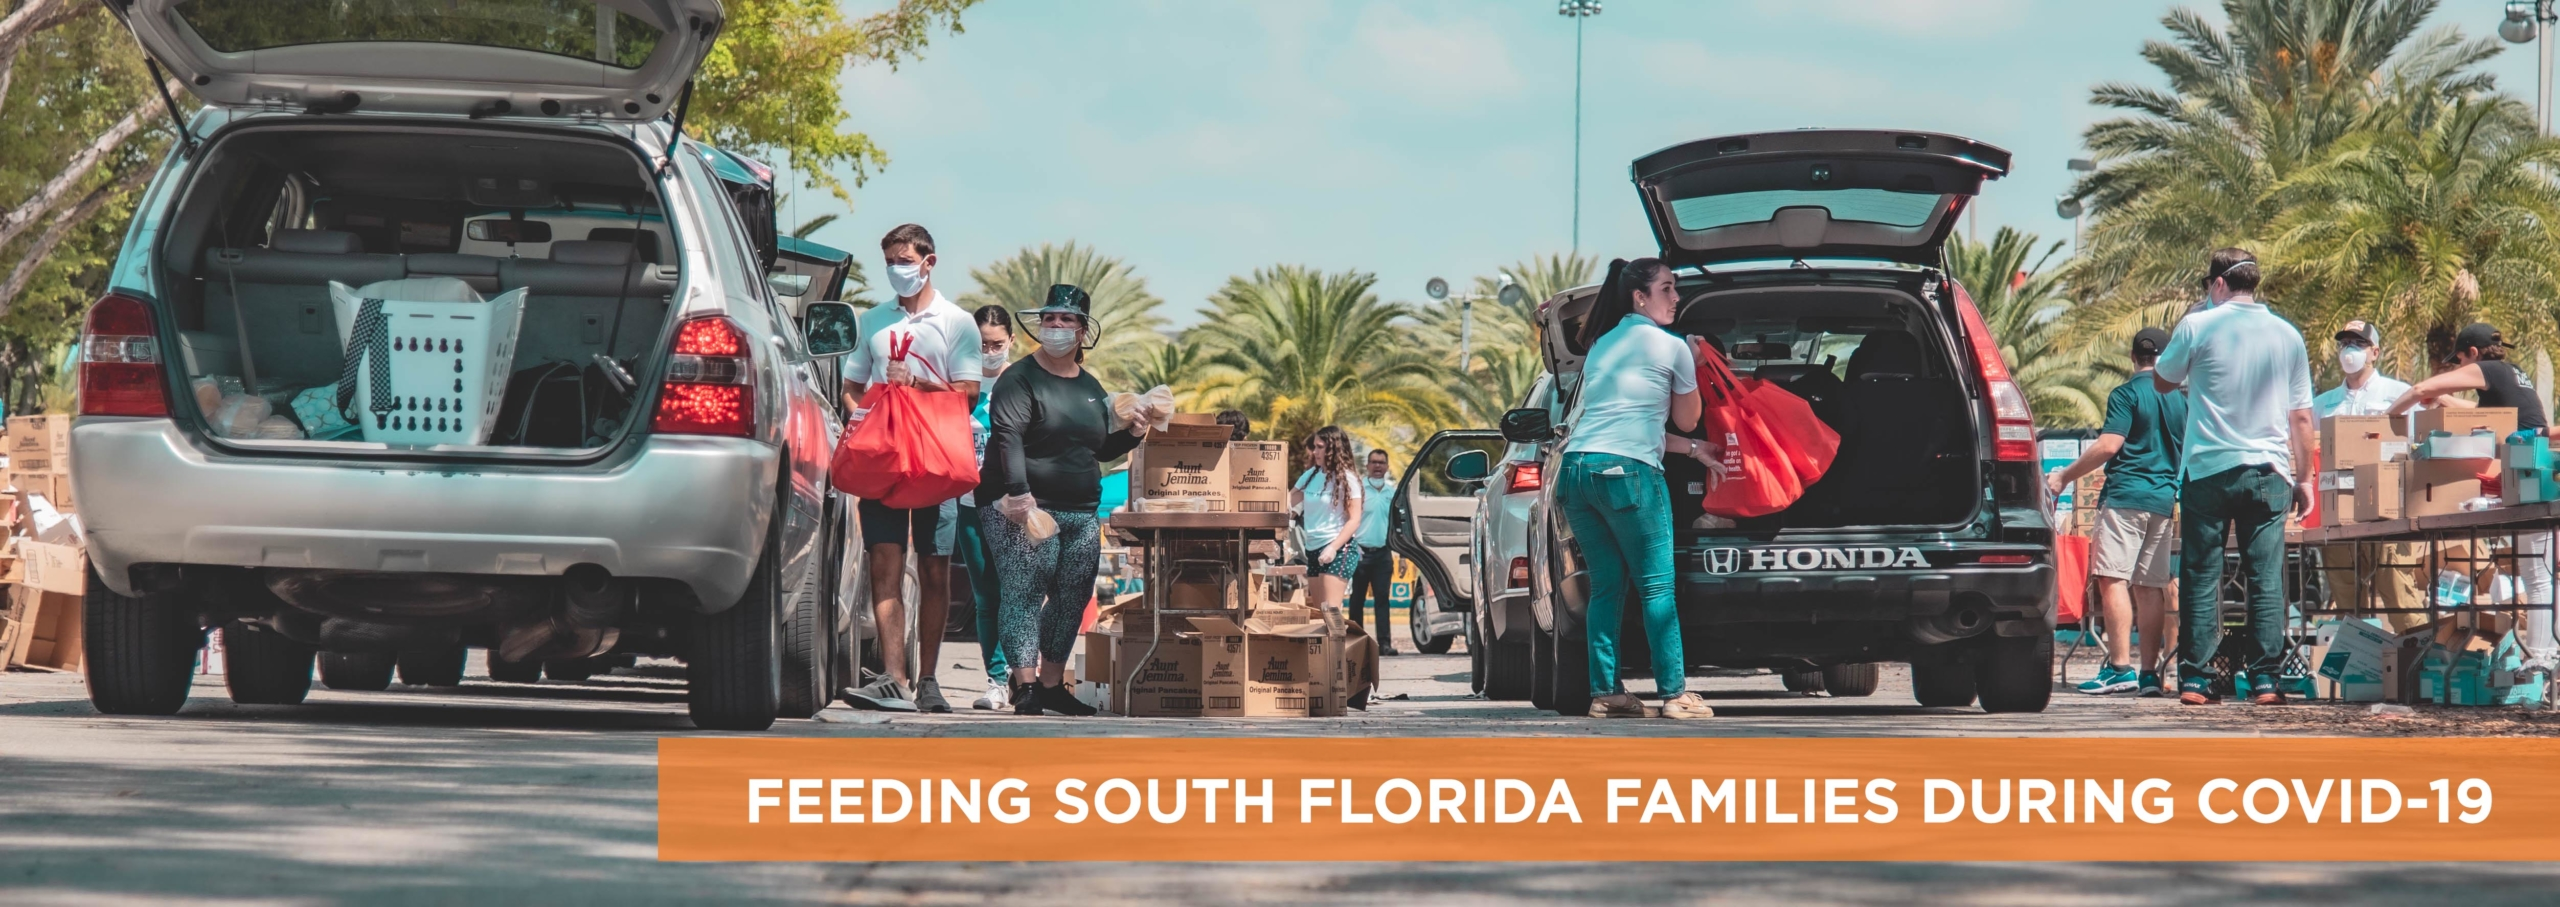 Feeding South Florida's COVID-19 Response Update